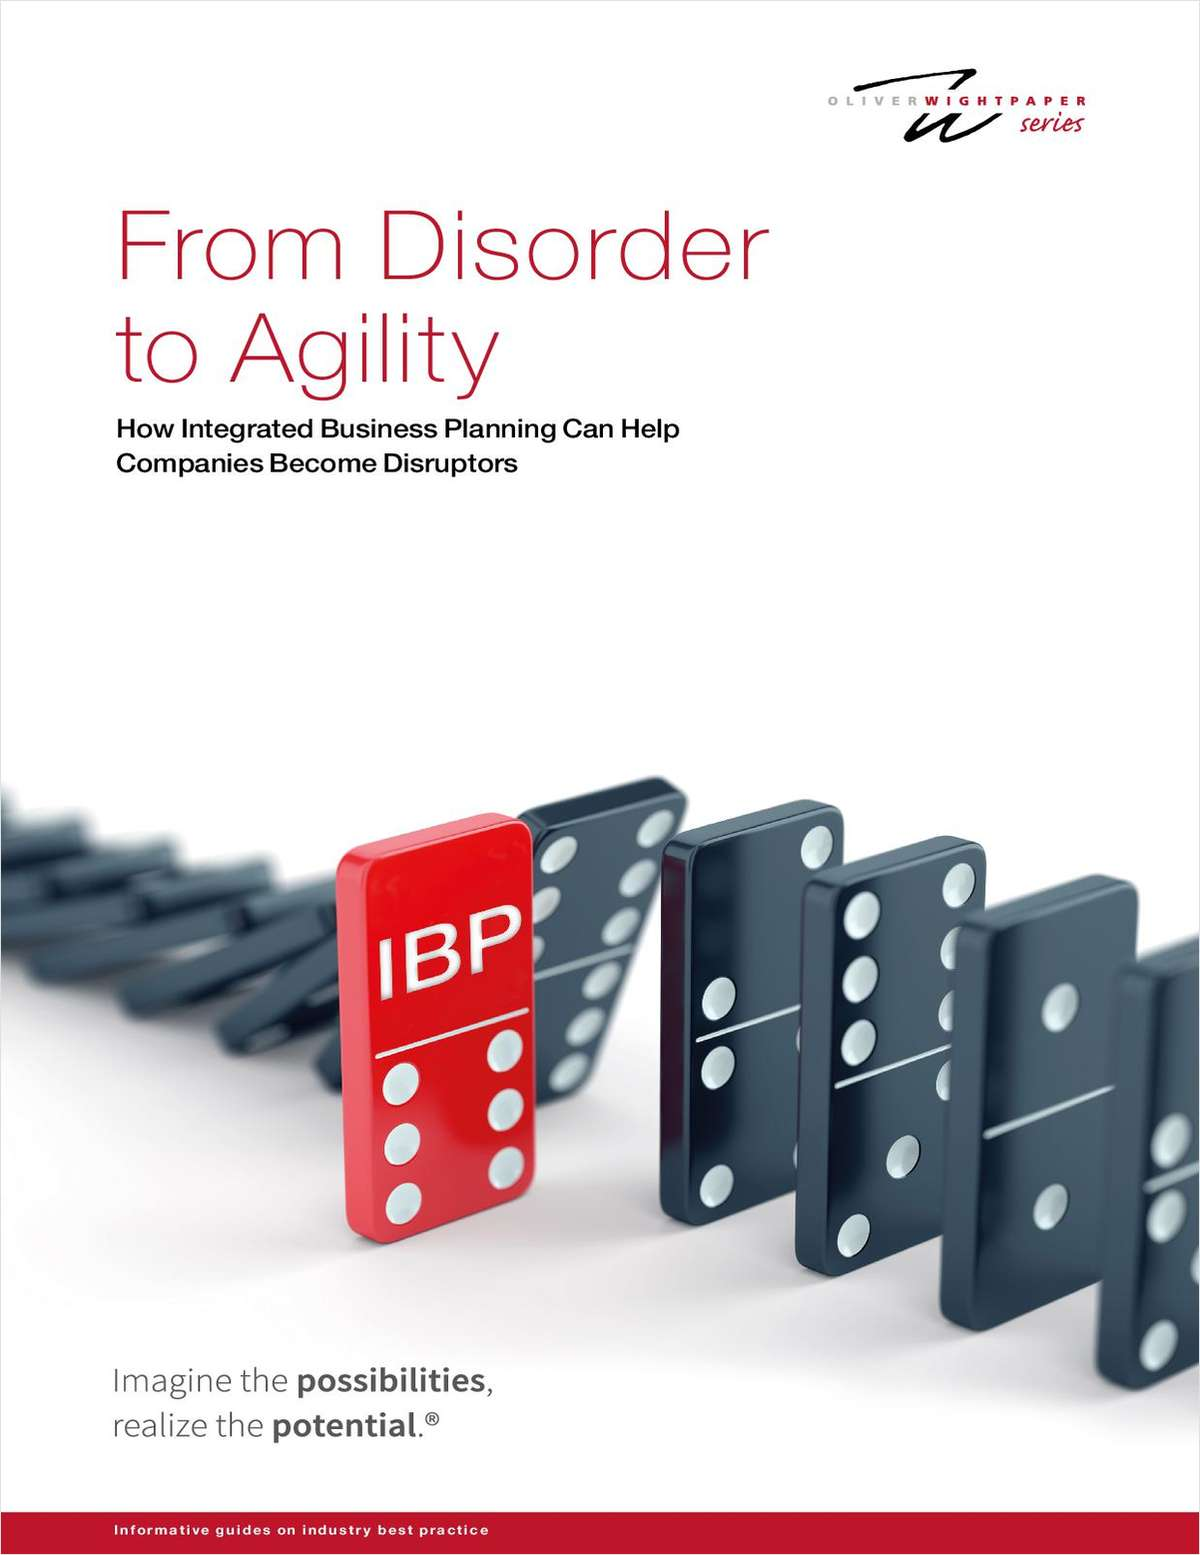 From Disorder to Agility